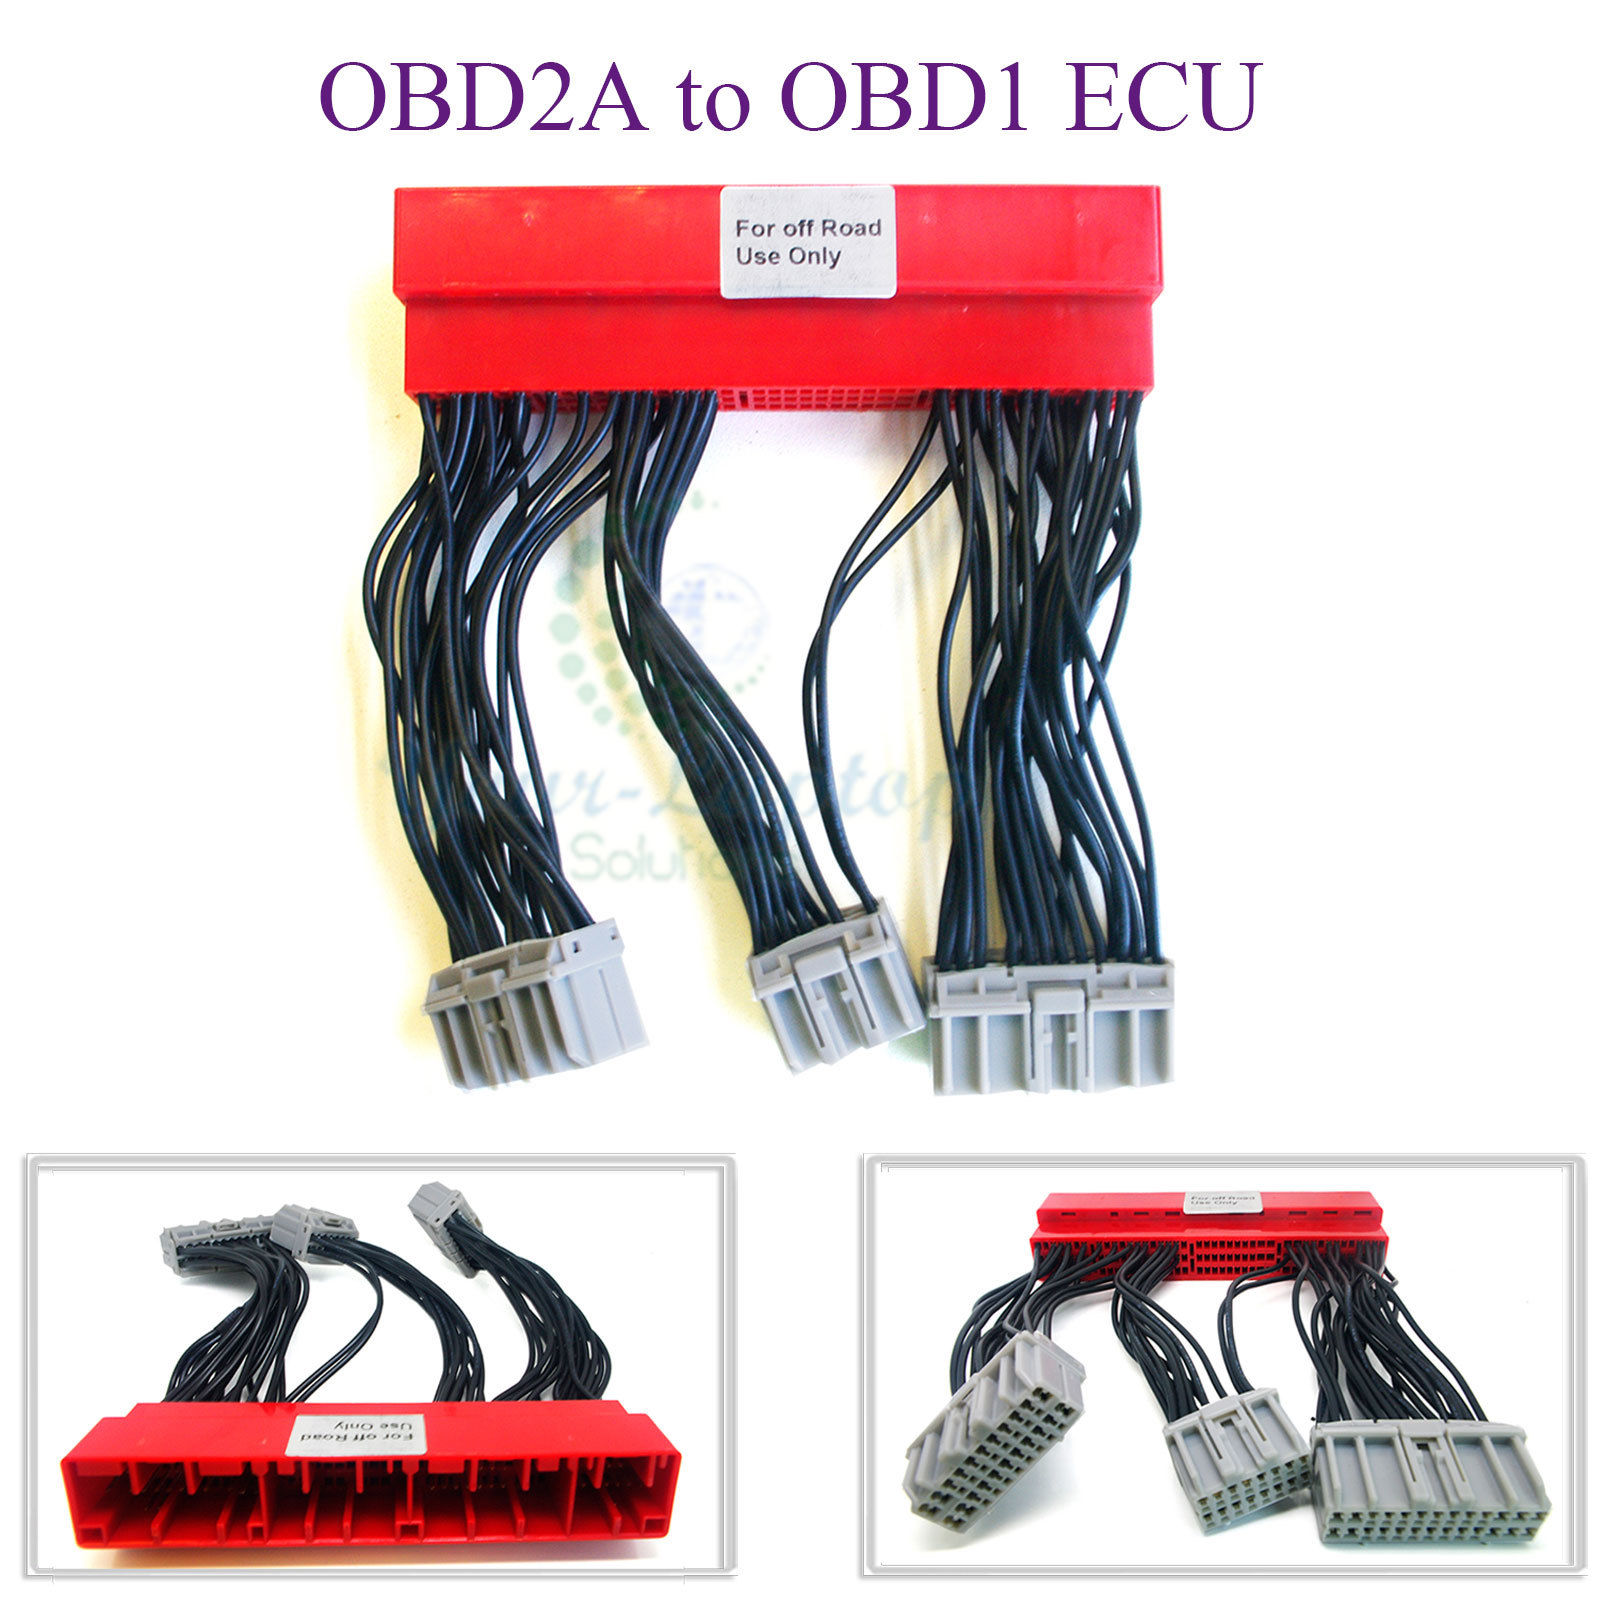 Obd2a To Obd1 Jumper Ecu Conversion Wire Harness For Acura Accord Wiring Civic 96 98